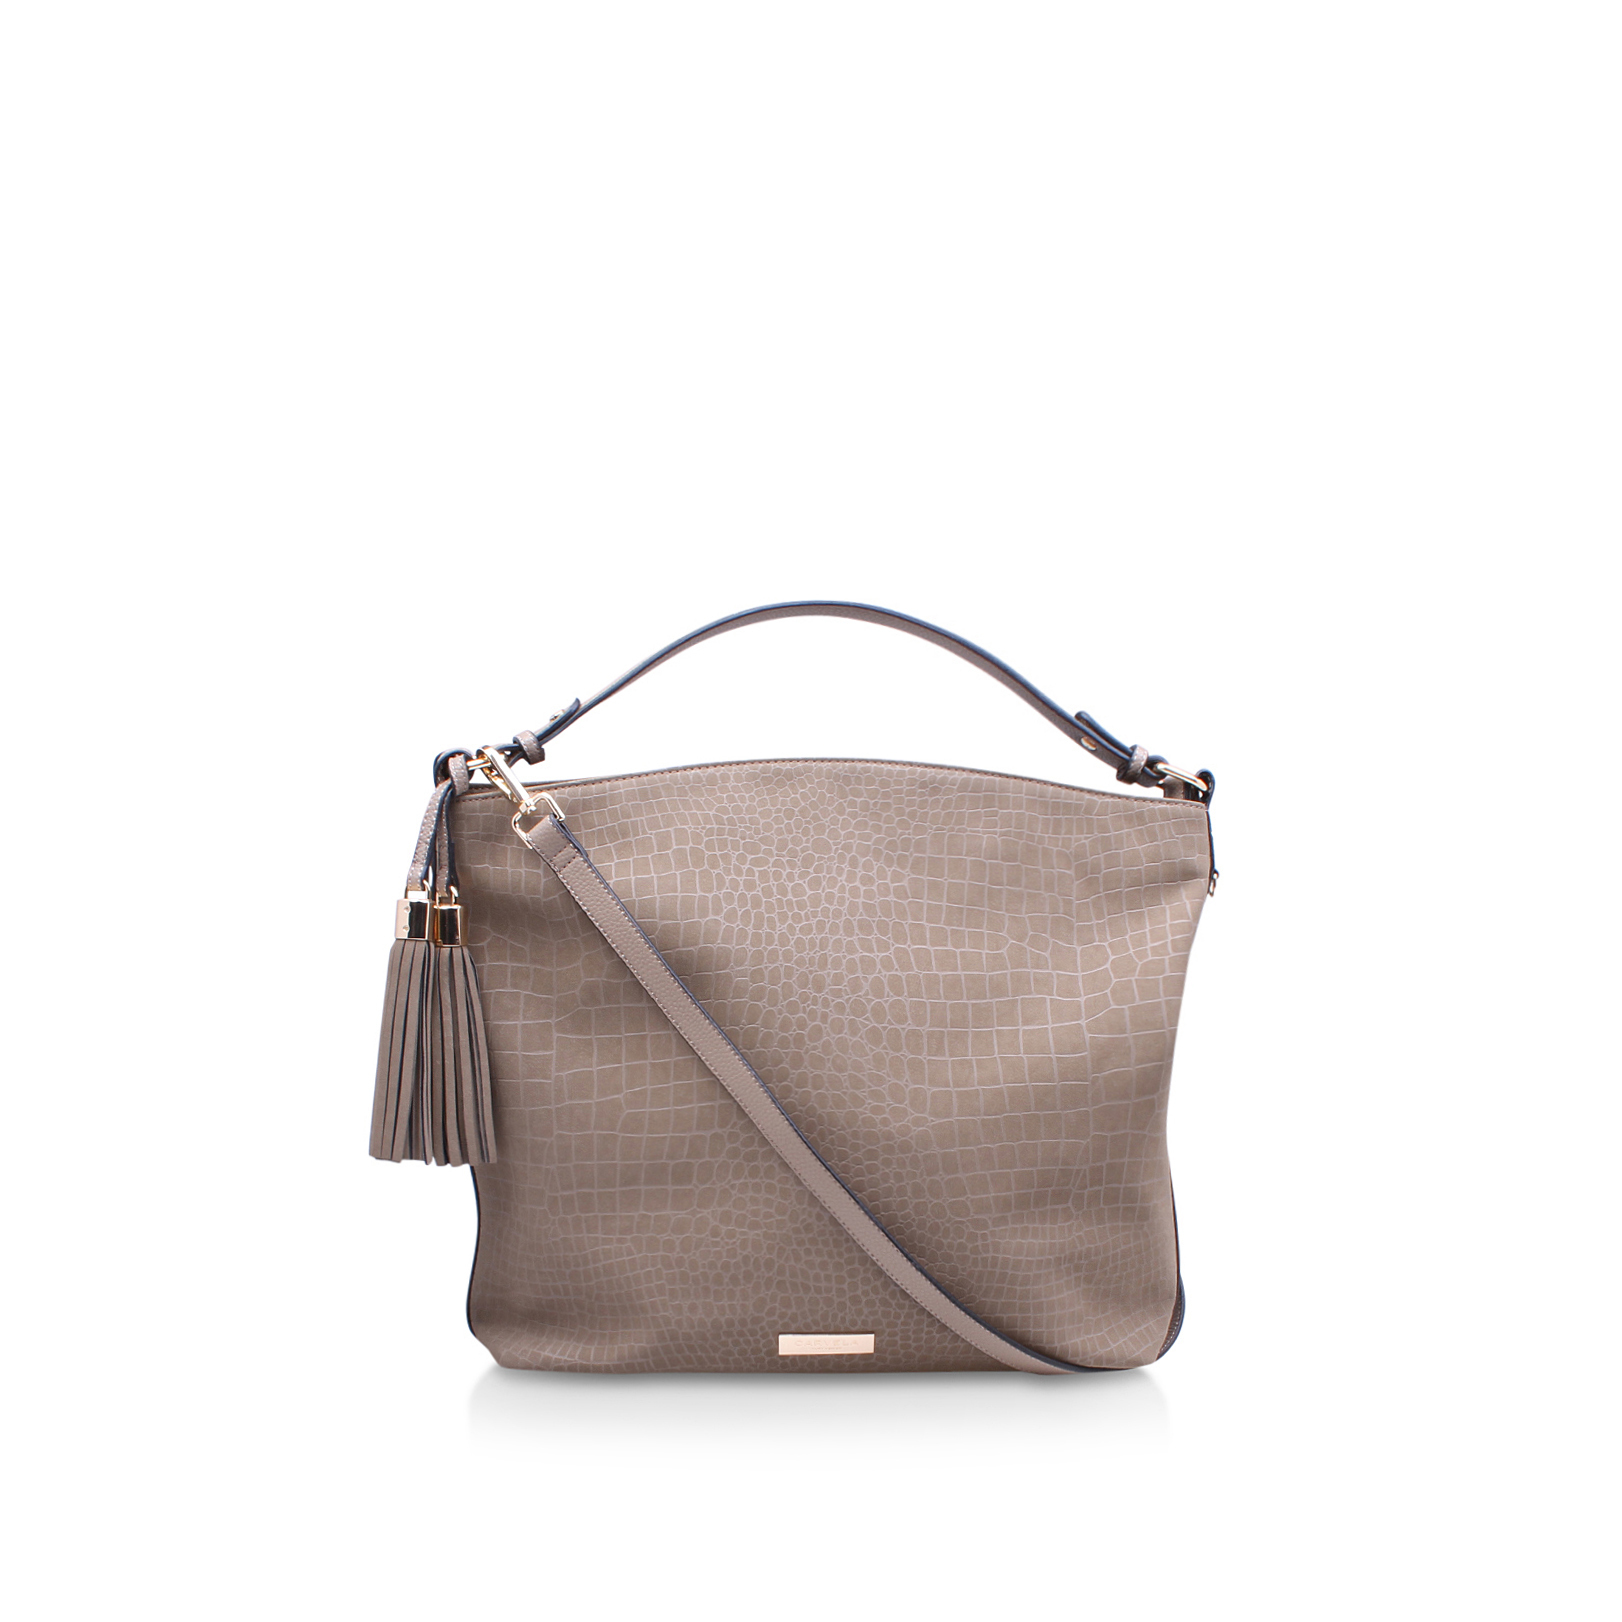 Shop tassel bag from Balenciaga, Chanel, Gucci and from dolcehouse.ml, Italist, Saks Fifth Avenue and many more. Find thousands of new high fashion items in one place.